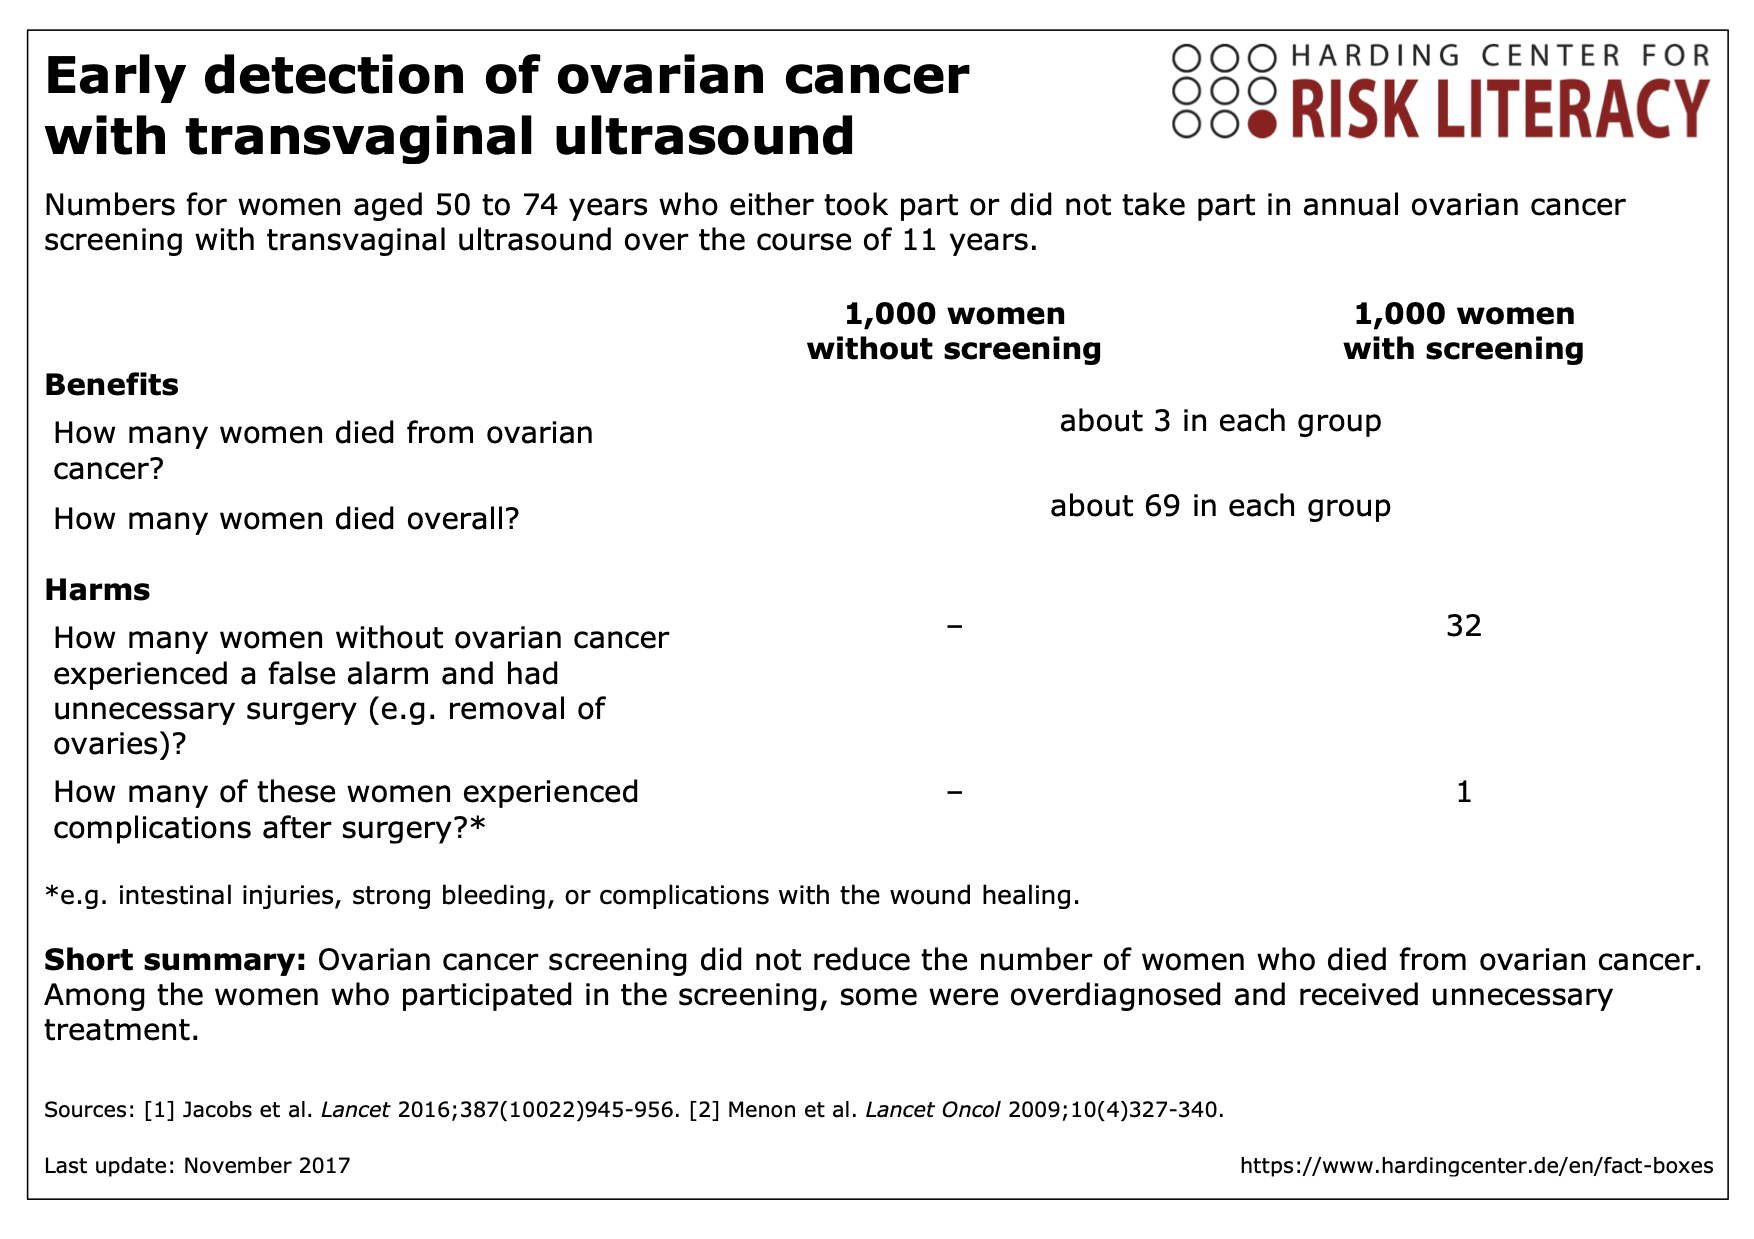 Fact box early detection of ovarian cancer with transvaginal ultrasound